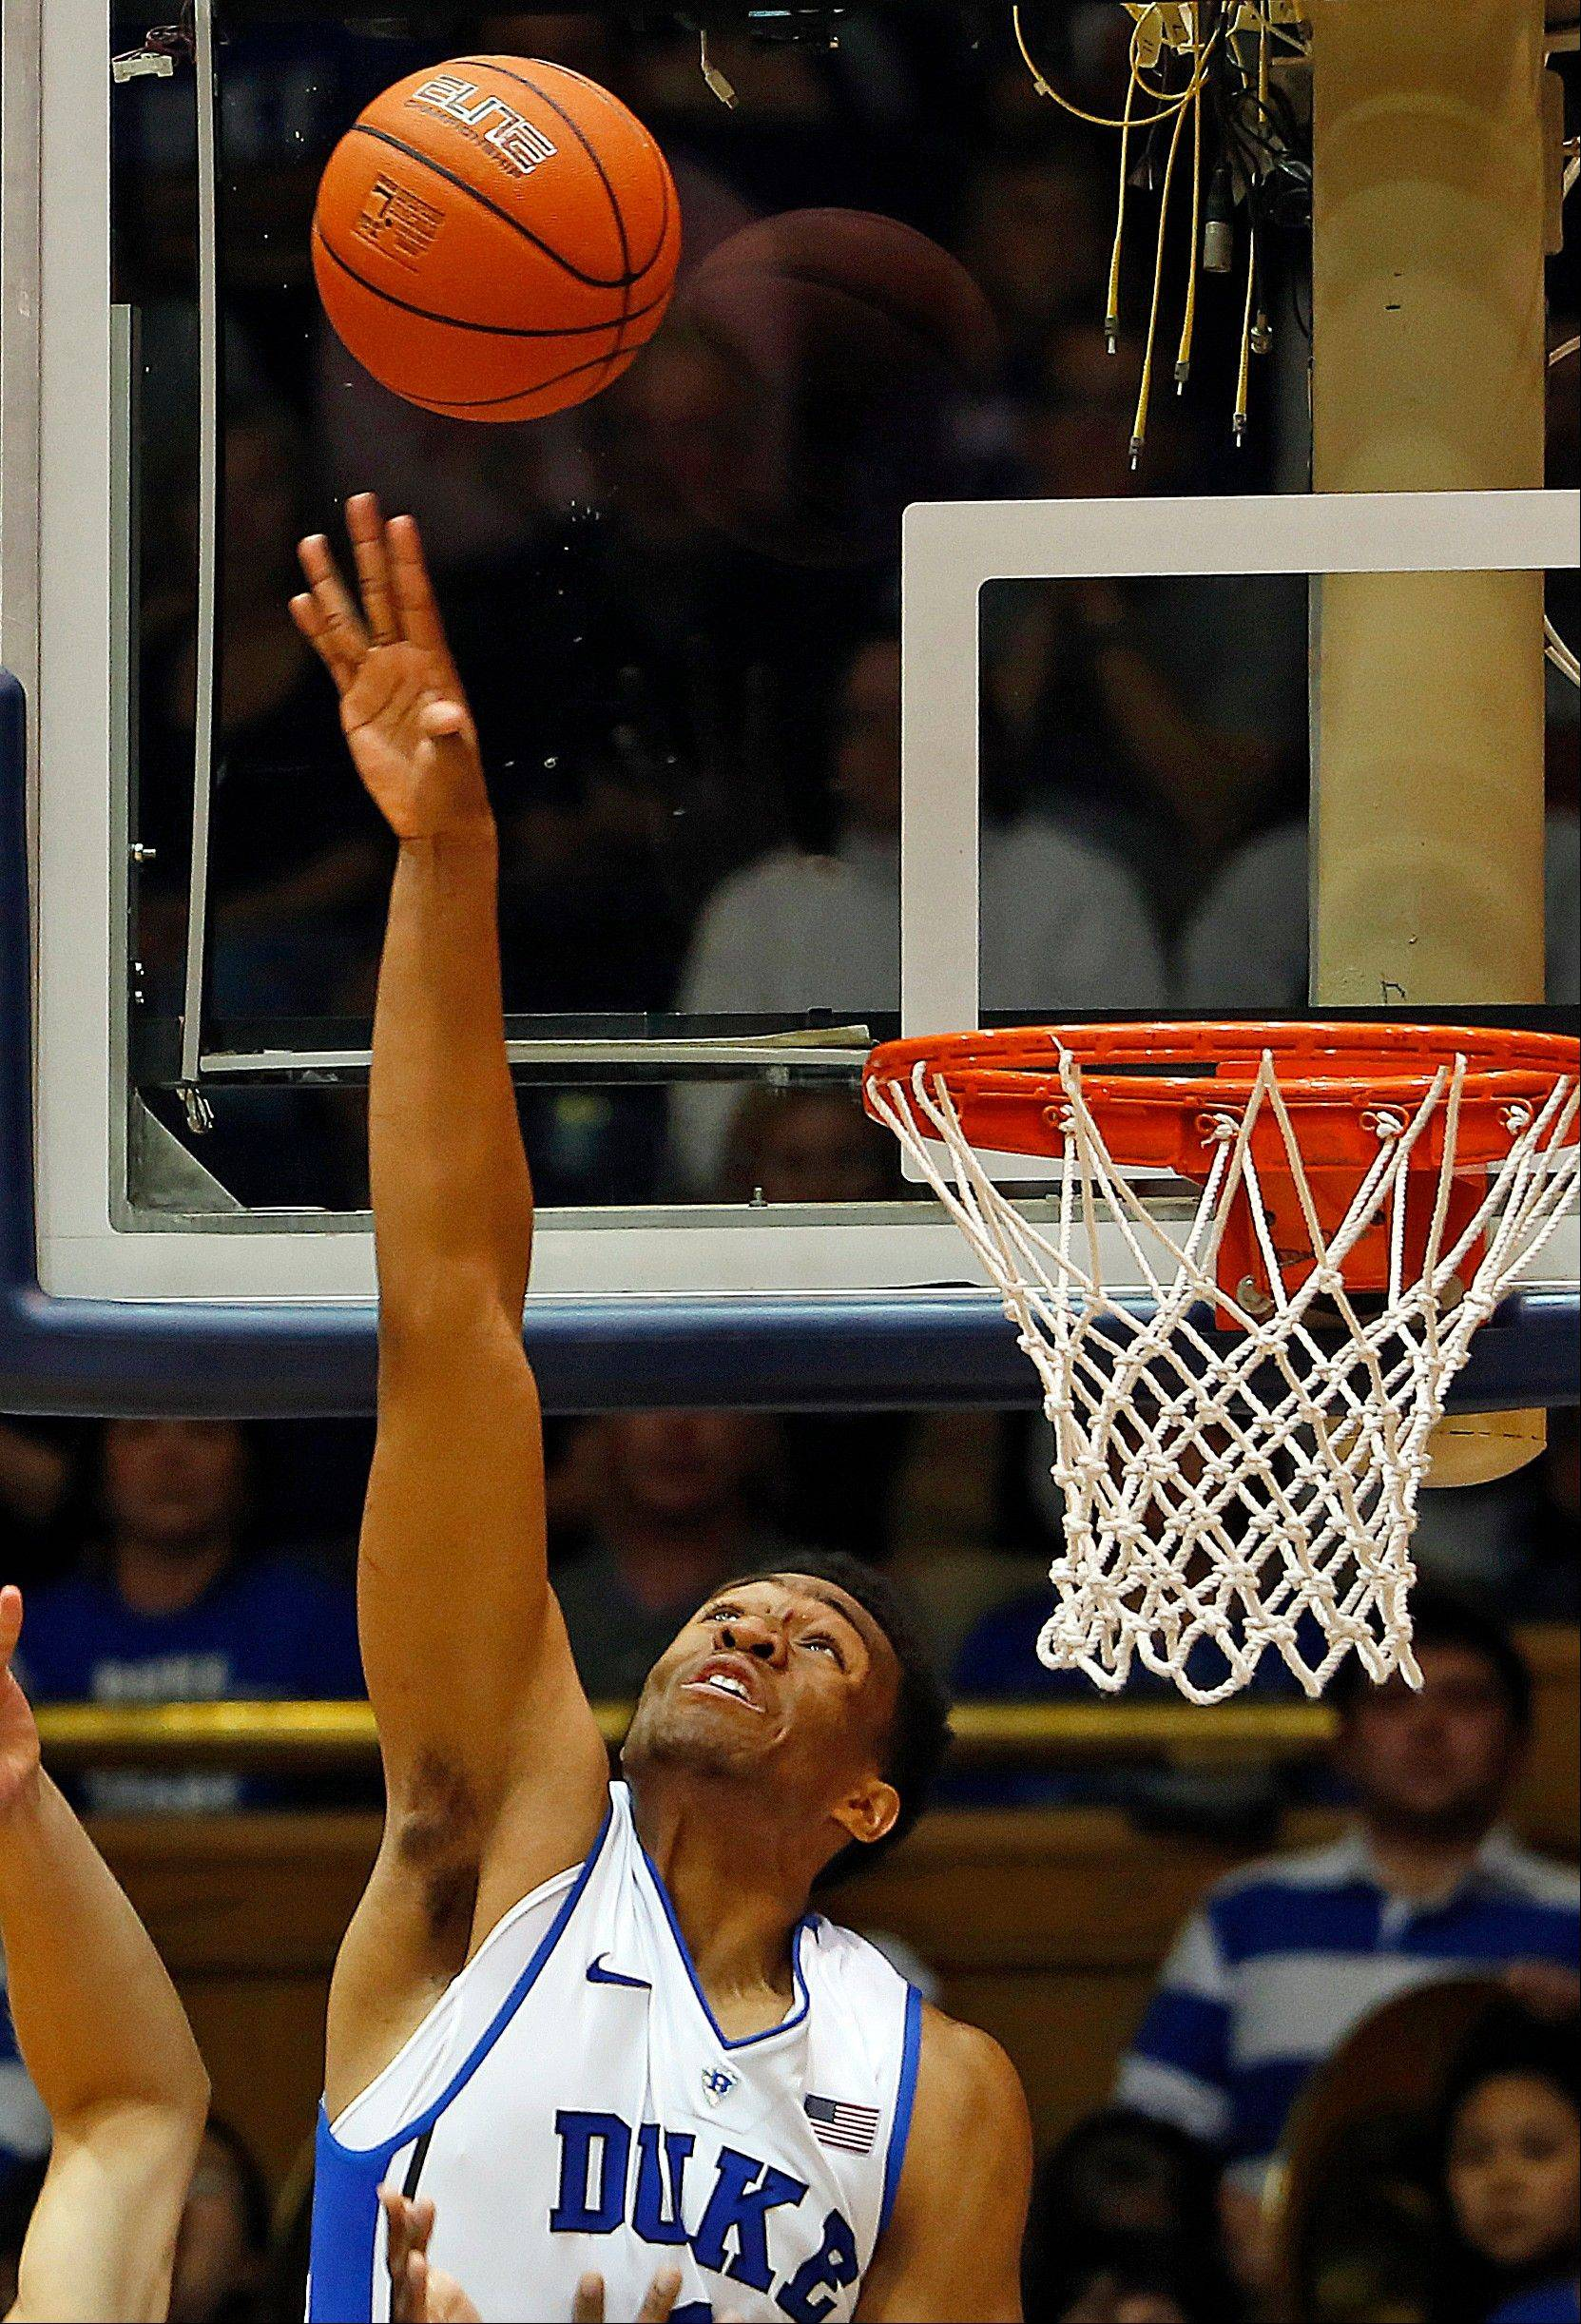 Duke's Jabari Parker blocks a shot during the second half of Friday's game against Davidson in Durham, N.C. Duke won 111-77.